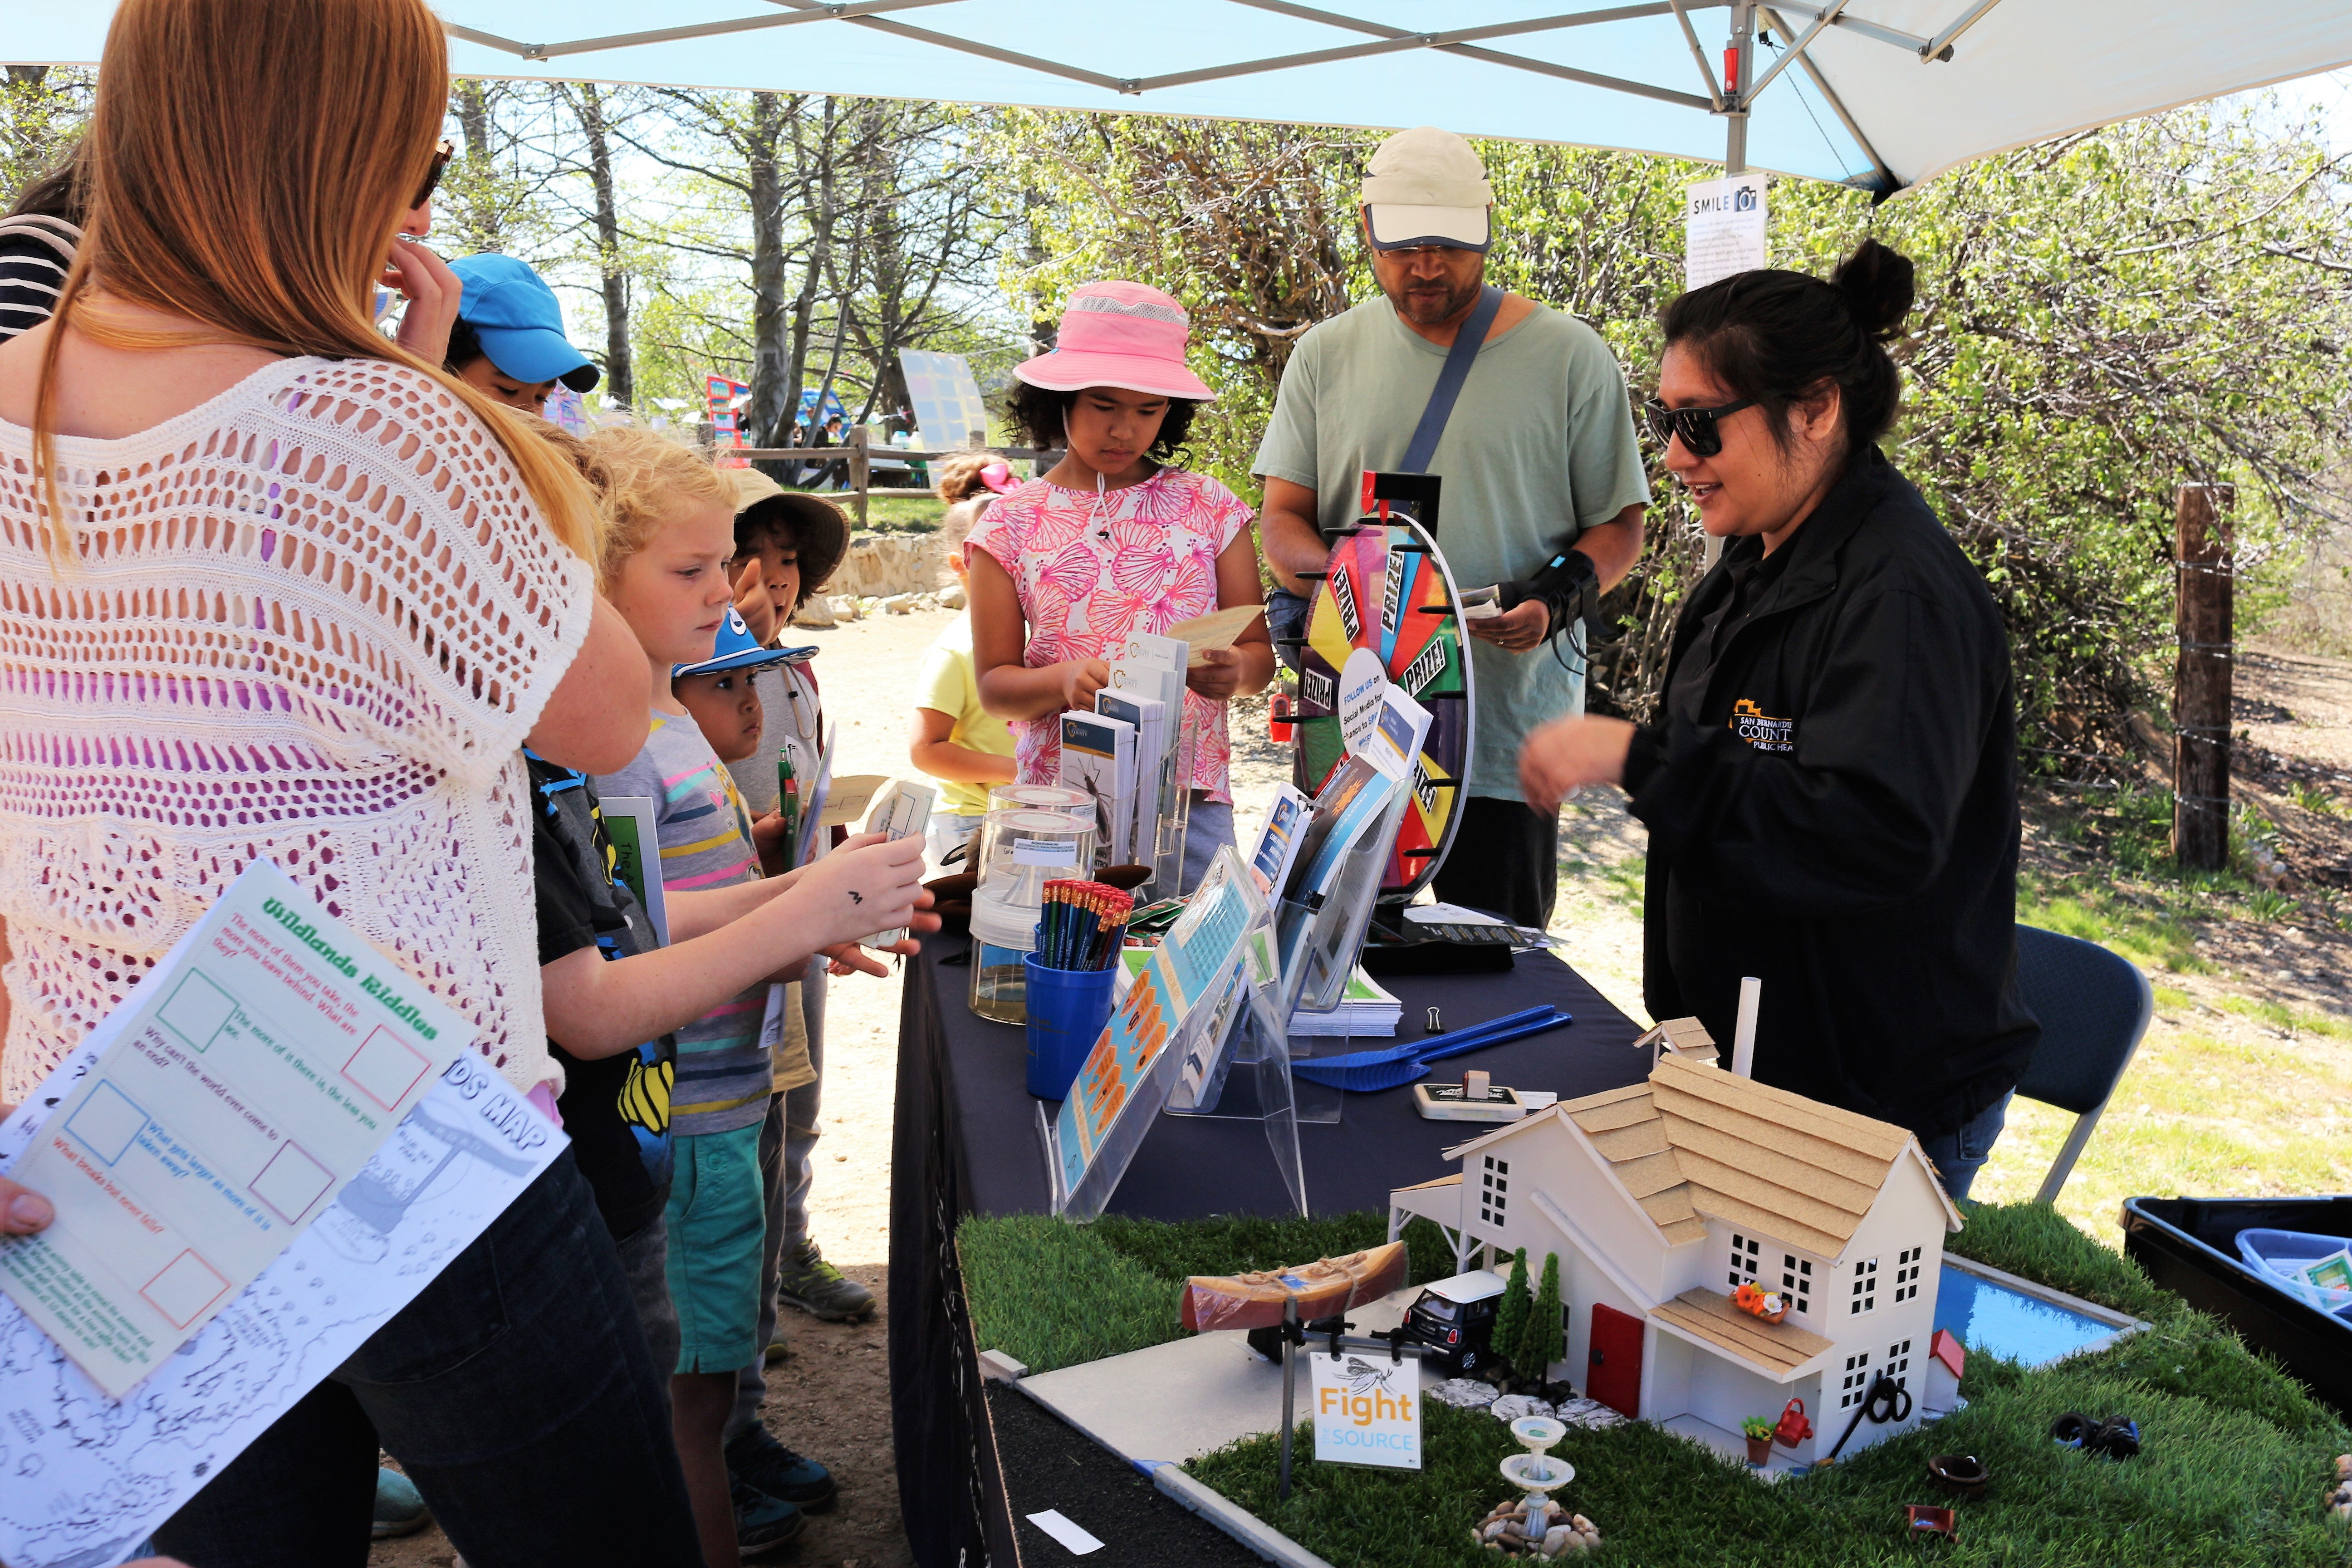 Health Education Specialist talking to the public about vector safety at the Arts and Nature Festival in Oak Glen.